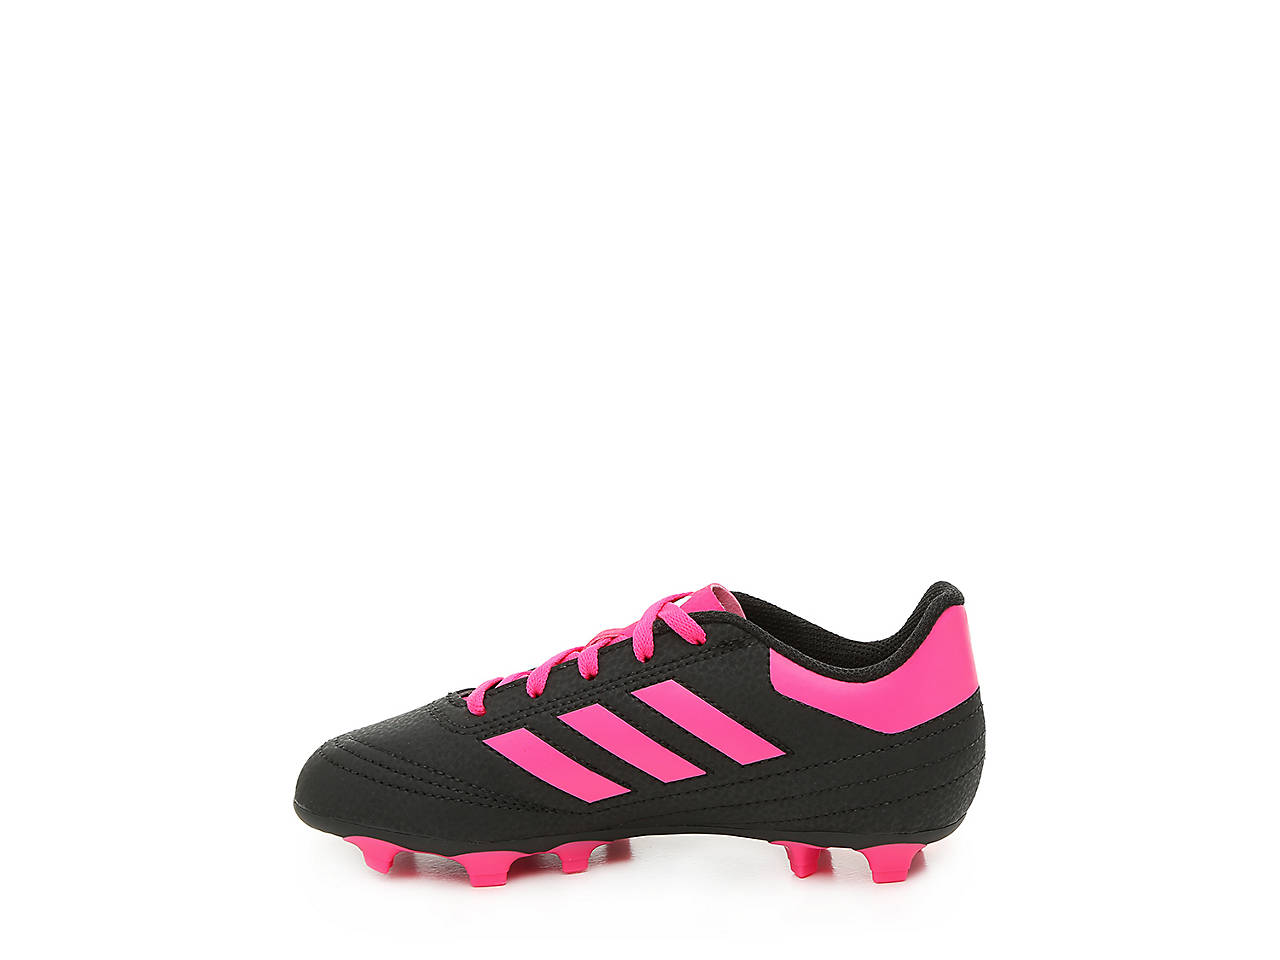 3415766ad5f99 adidas Goletto VI FG J Toddler & Youth Soccer Cleat Kids Shoes | DSW